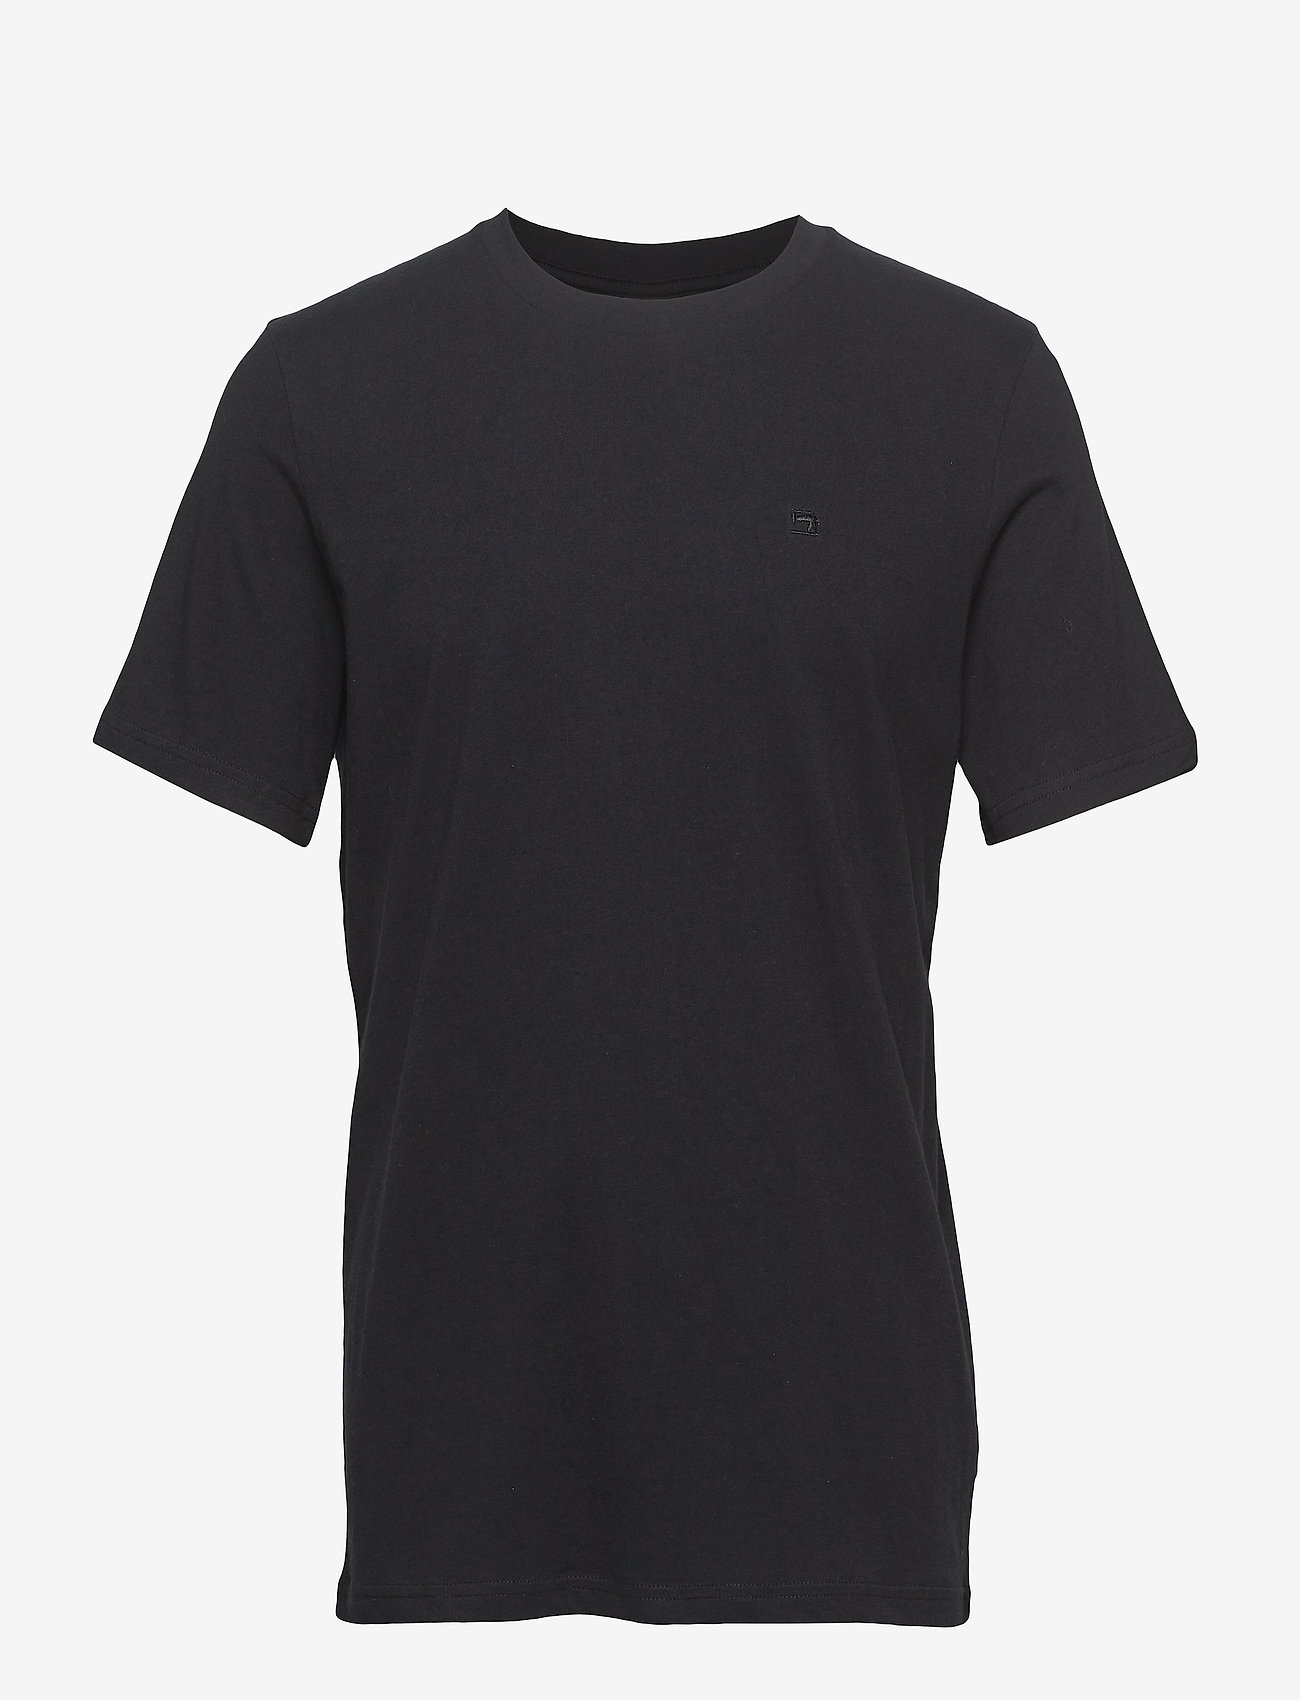 Scotch & Soda - Cotton tee with wider neck rib - basic t-shirts - black - 0